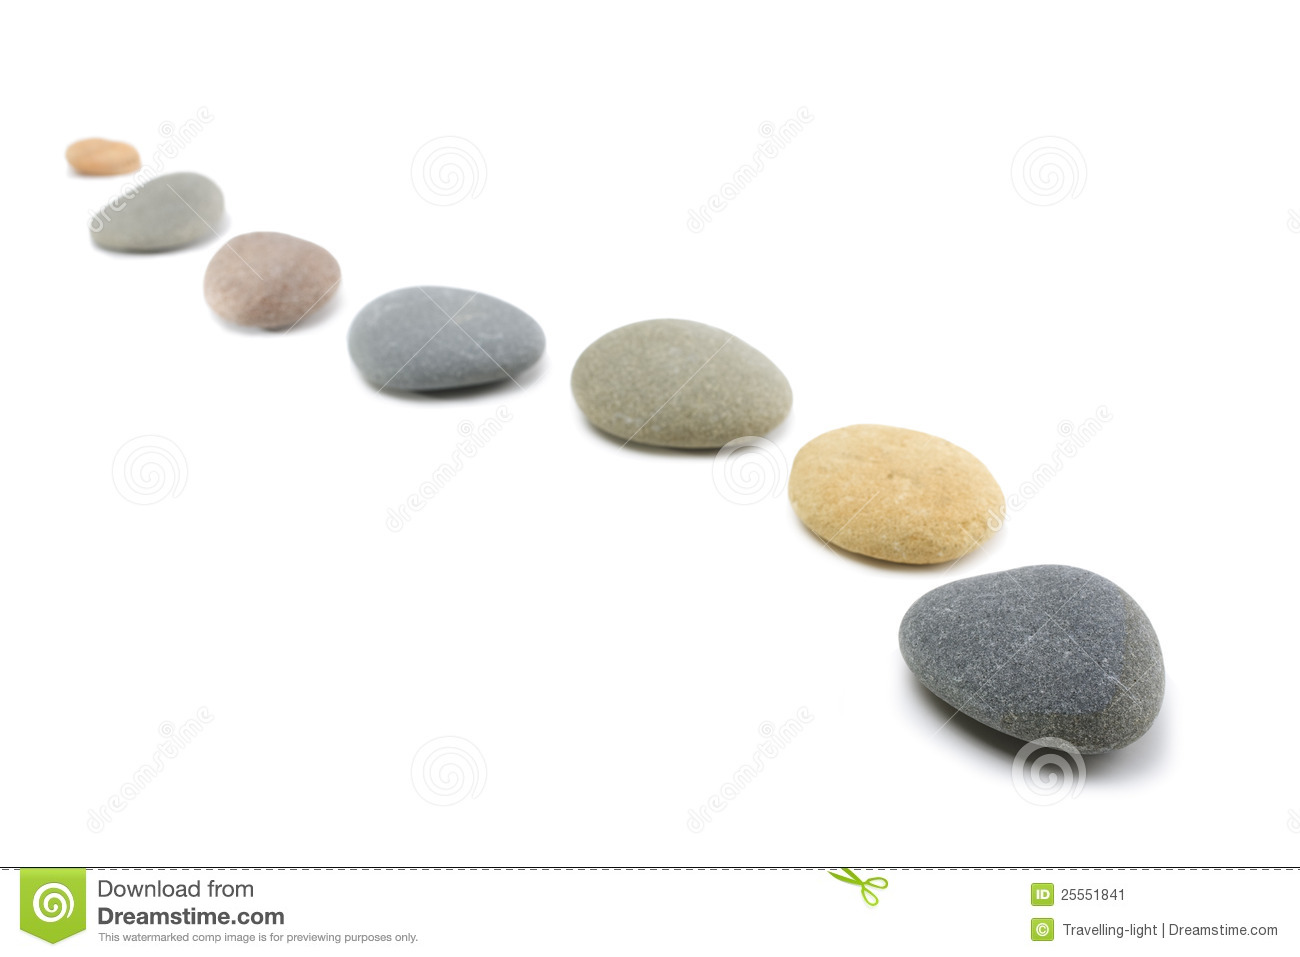 Rounded stones arranged in a curving line on white background.